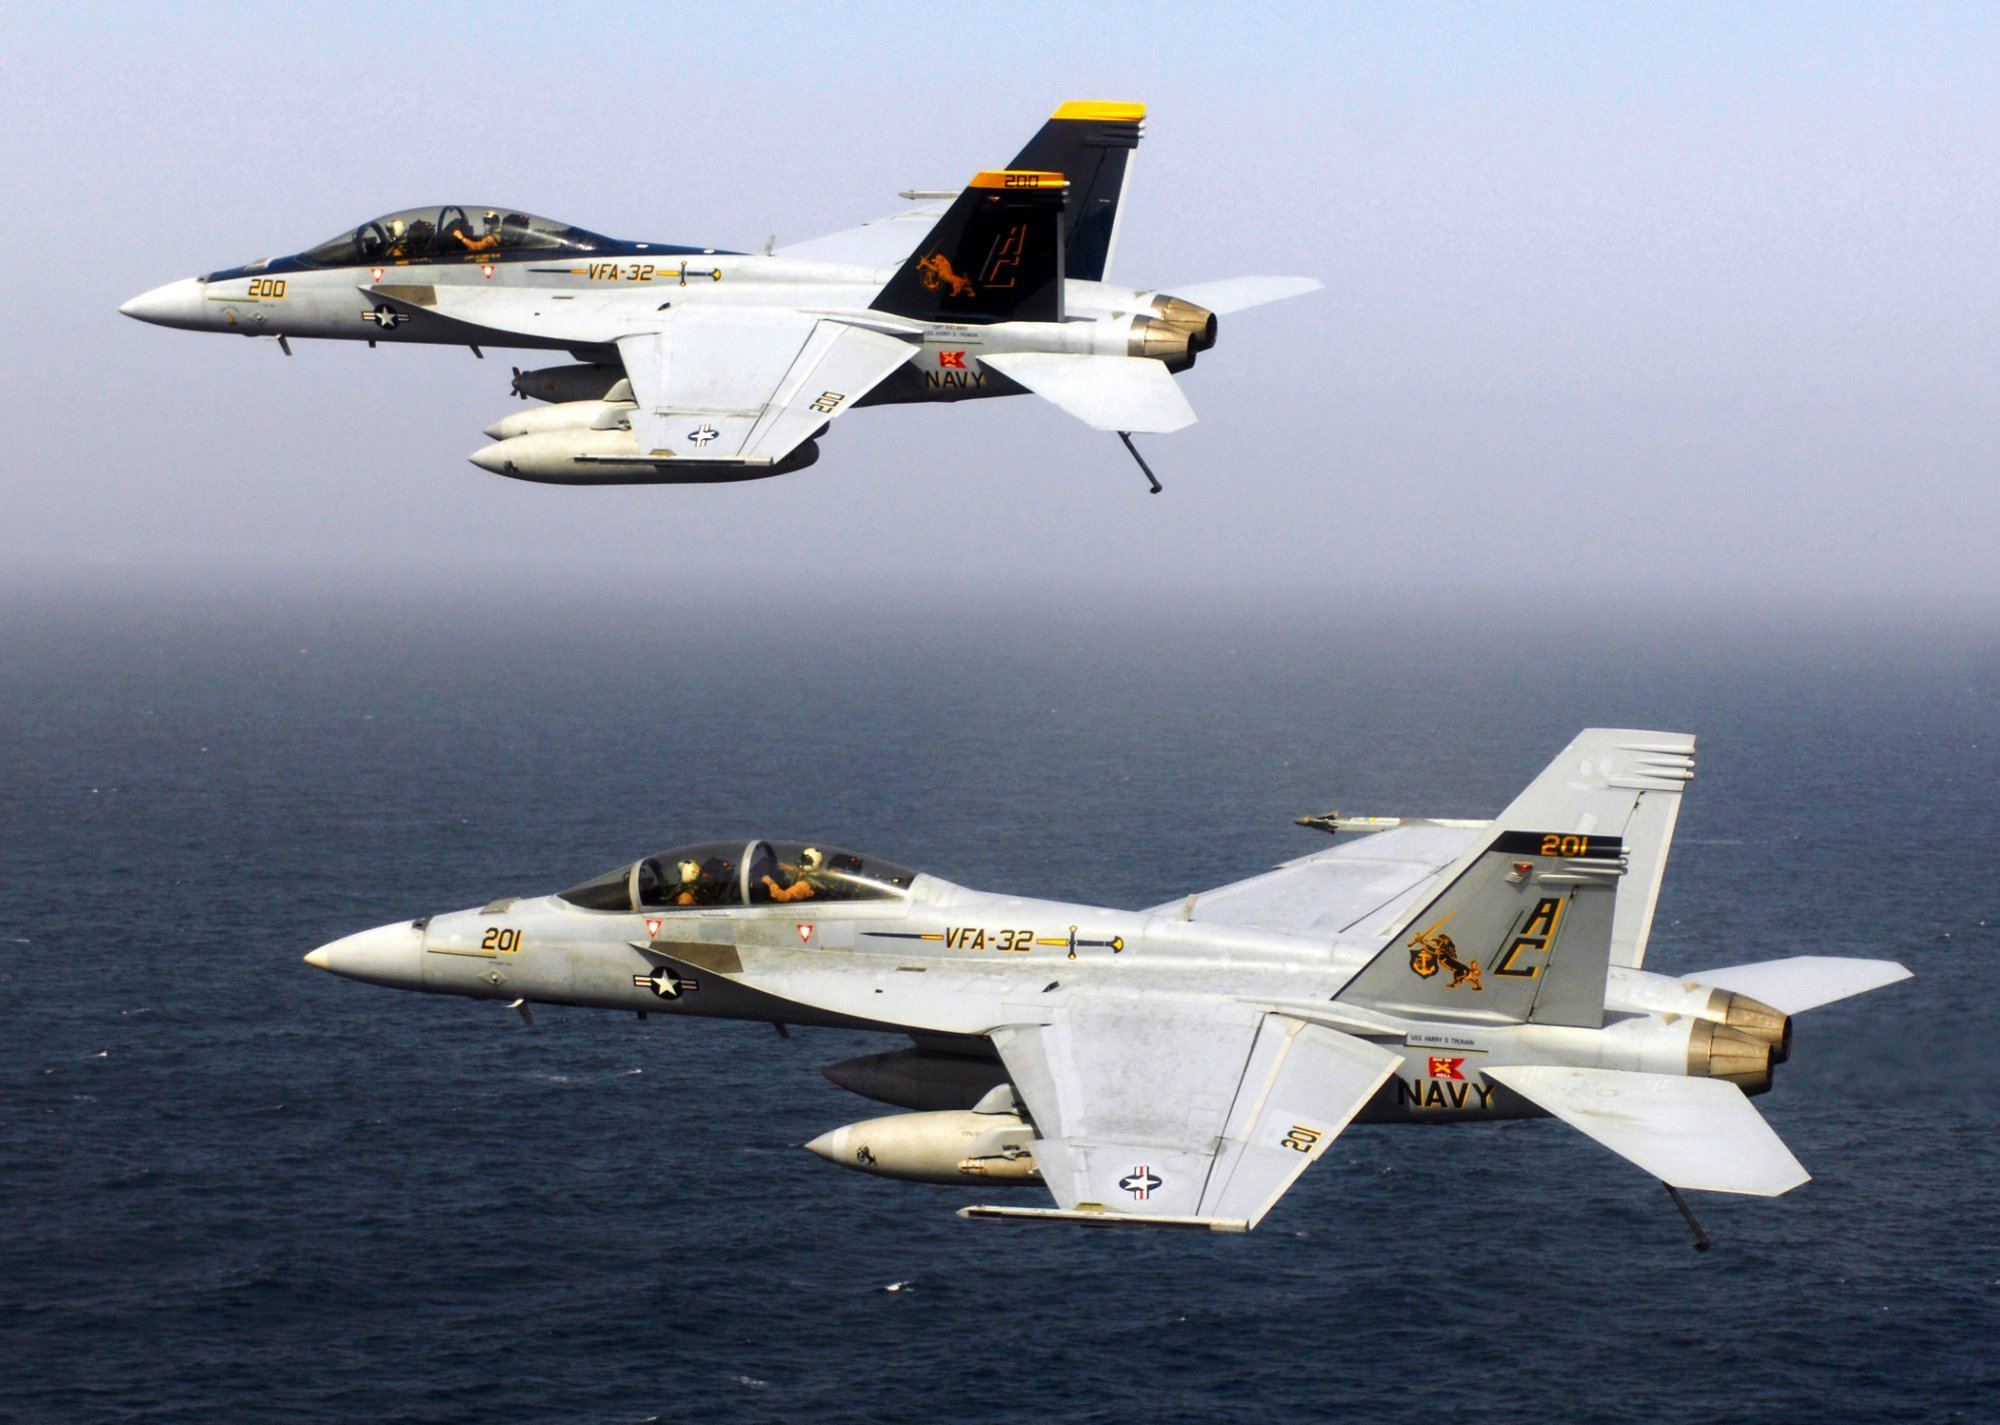 Aircraft military Navy planes HD Wallpaper